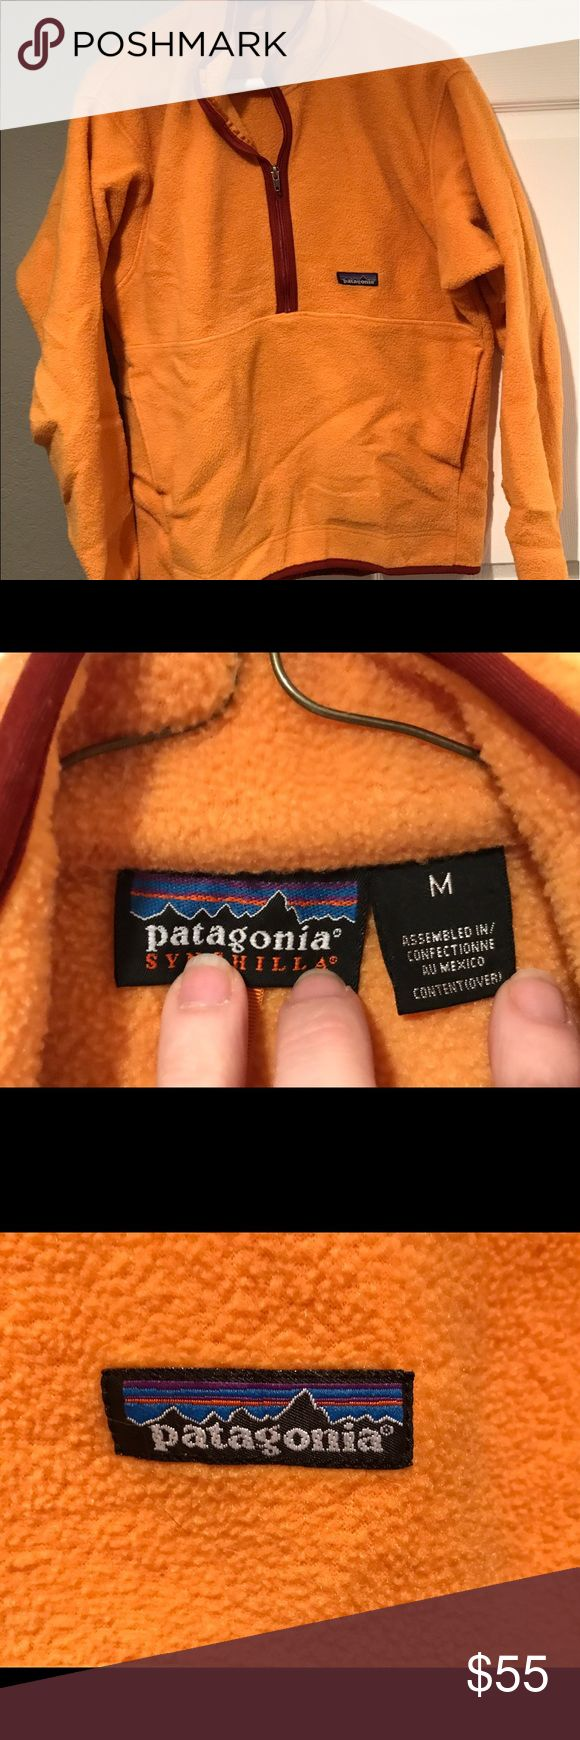 Patagonia Fleece Patagonia fleece half-zip pullover. Yellow/orange in color with red pipping. Barely worn and without stains or tears. Patagonia Tops